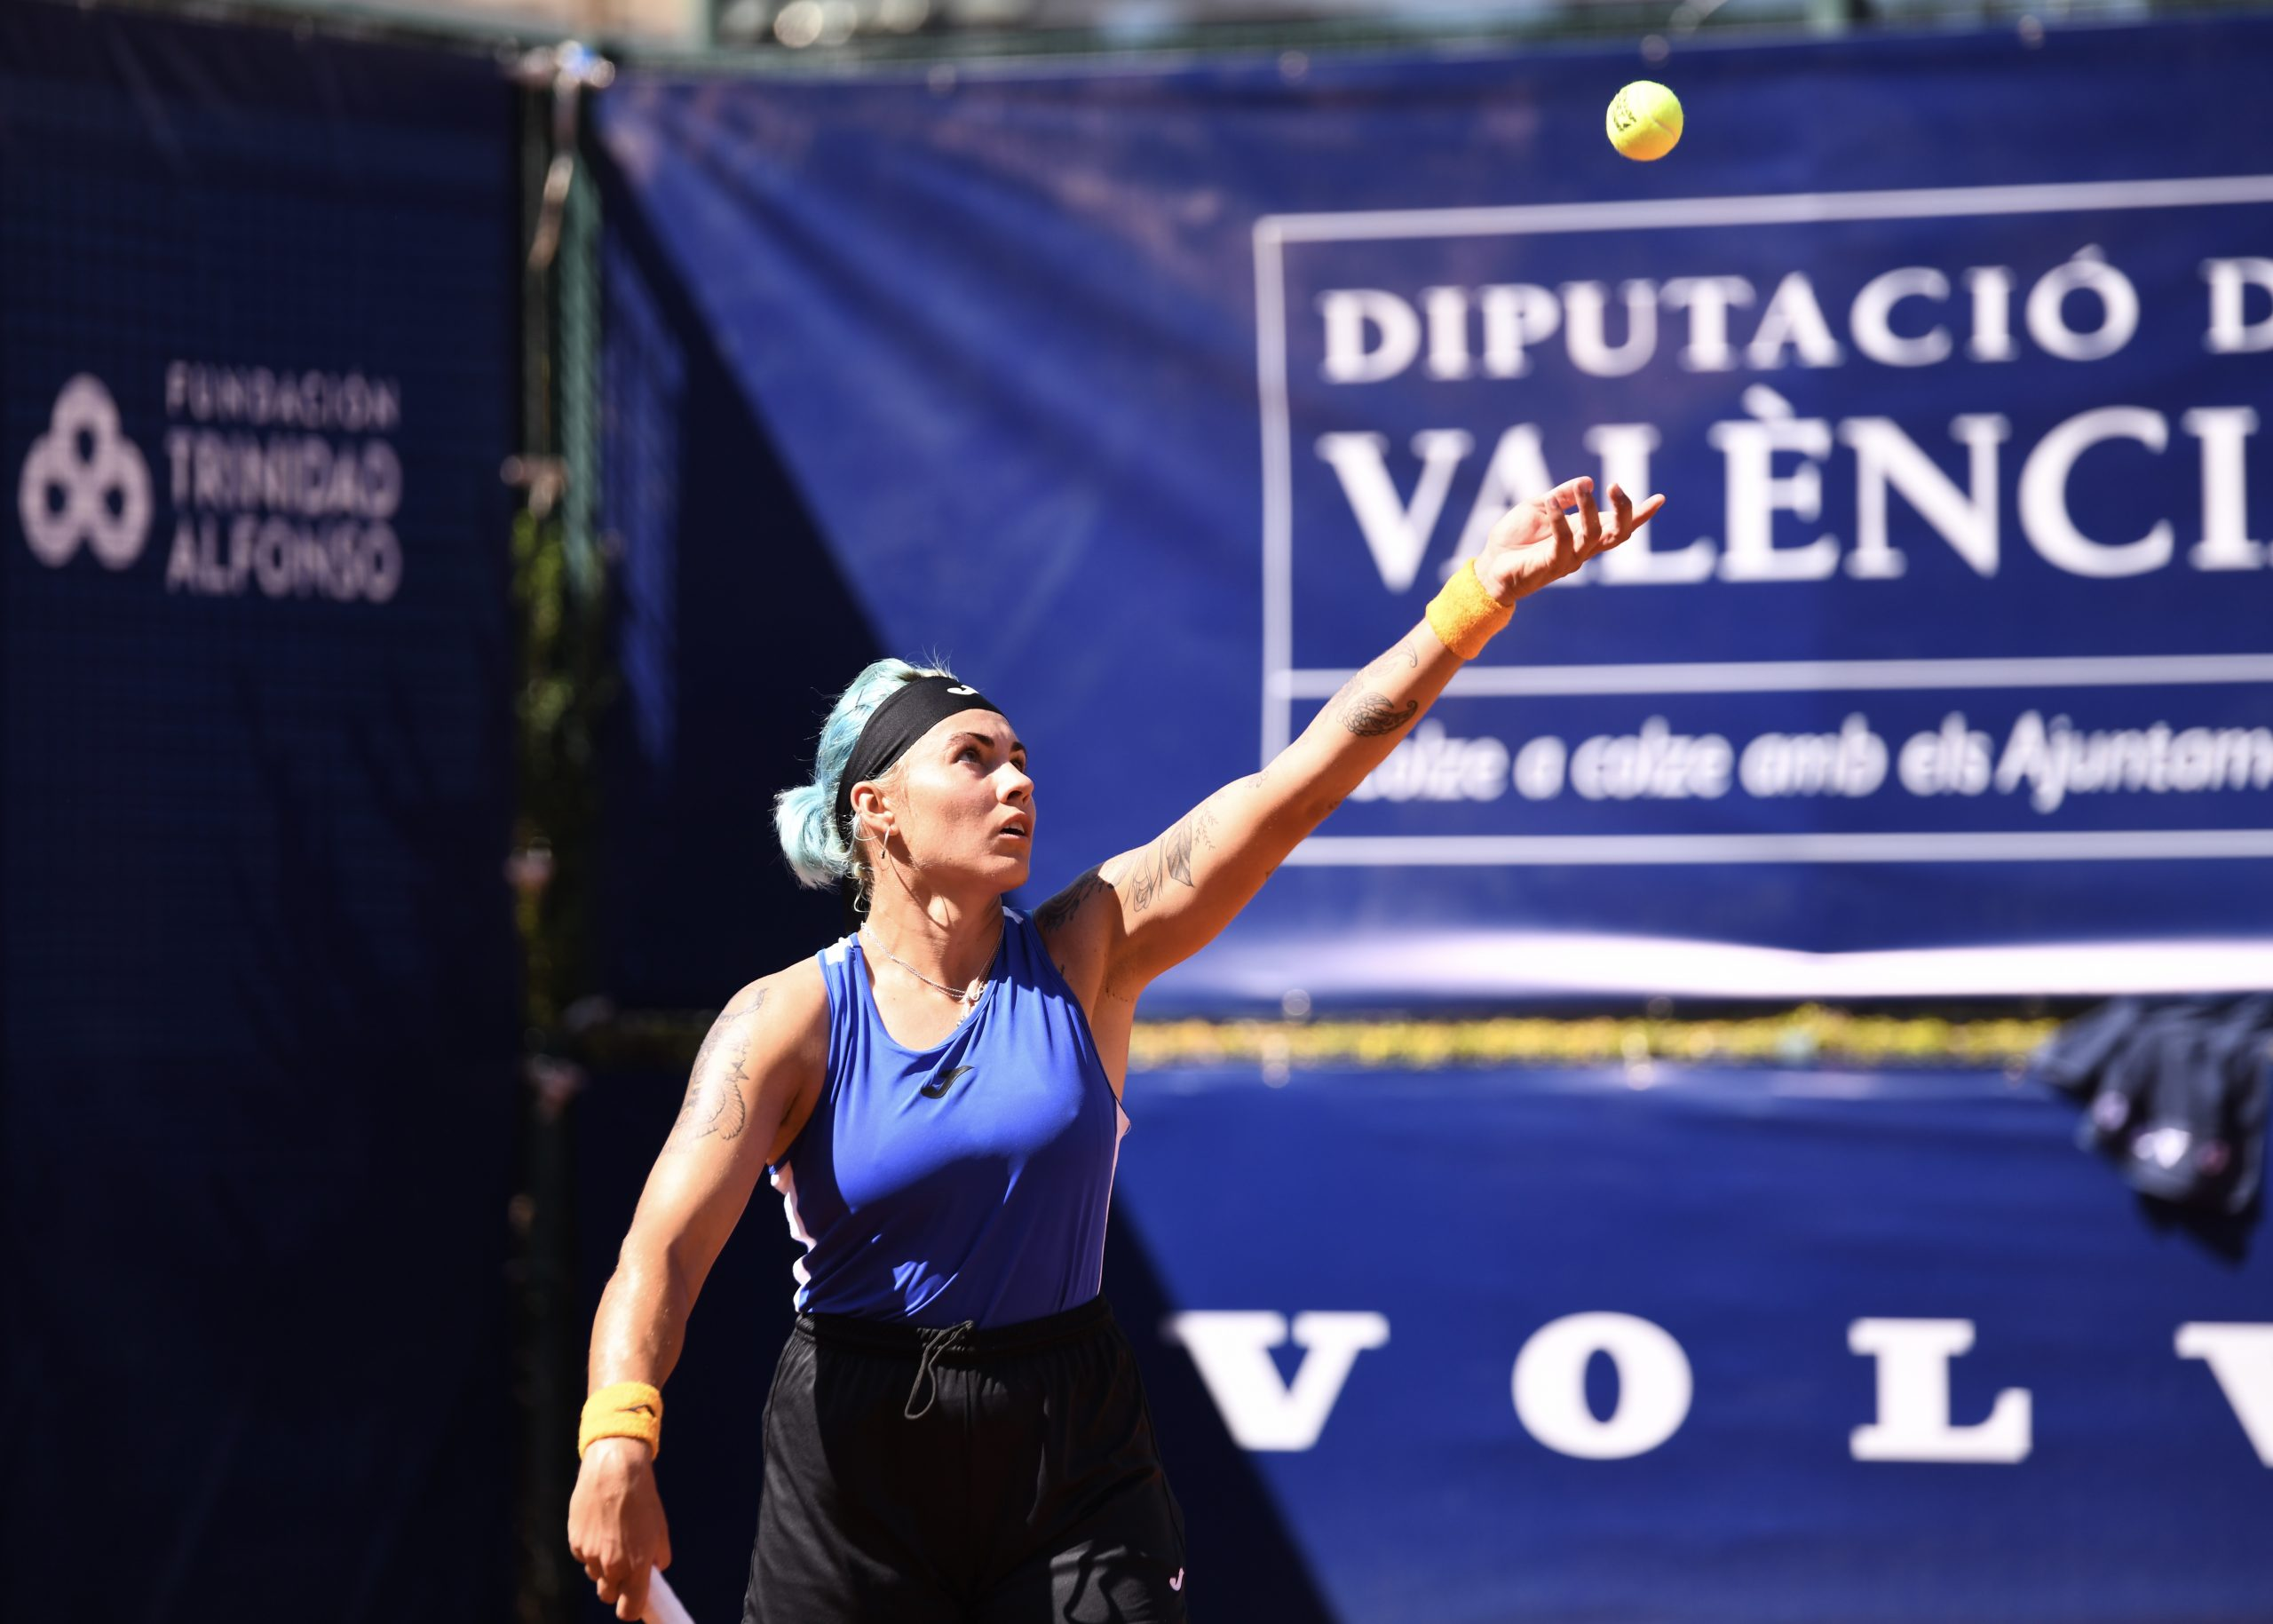 BOLSOVA REACHES THE SEMIFINALS WITH TWO MATCHES IN ONE DAY AND FITA MAINTAINS VALENCIAN PRESENCE IN DOUBLES